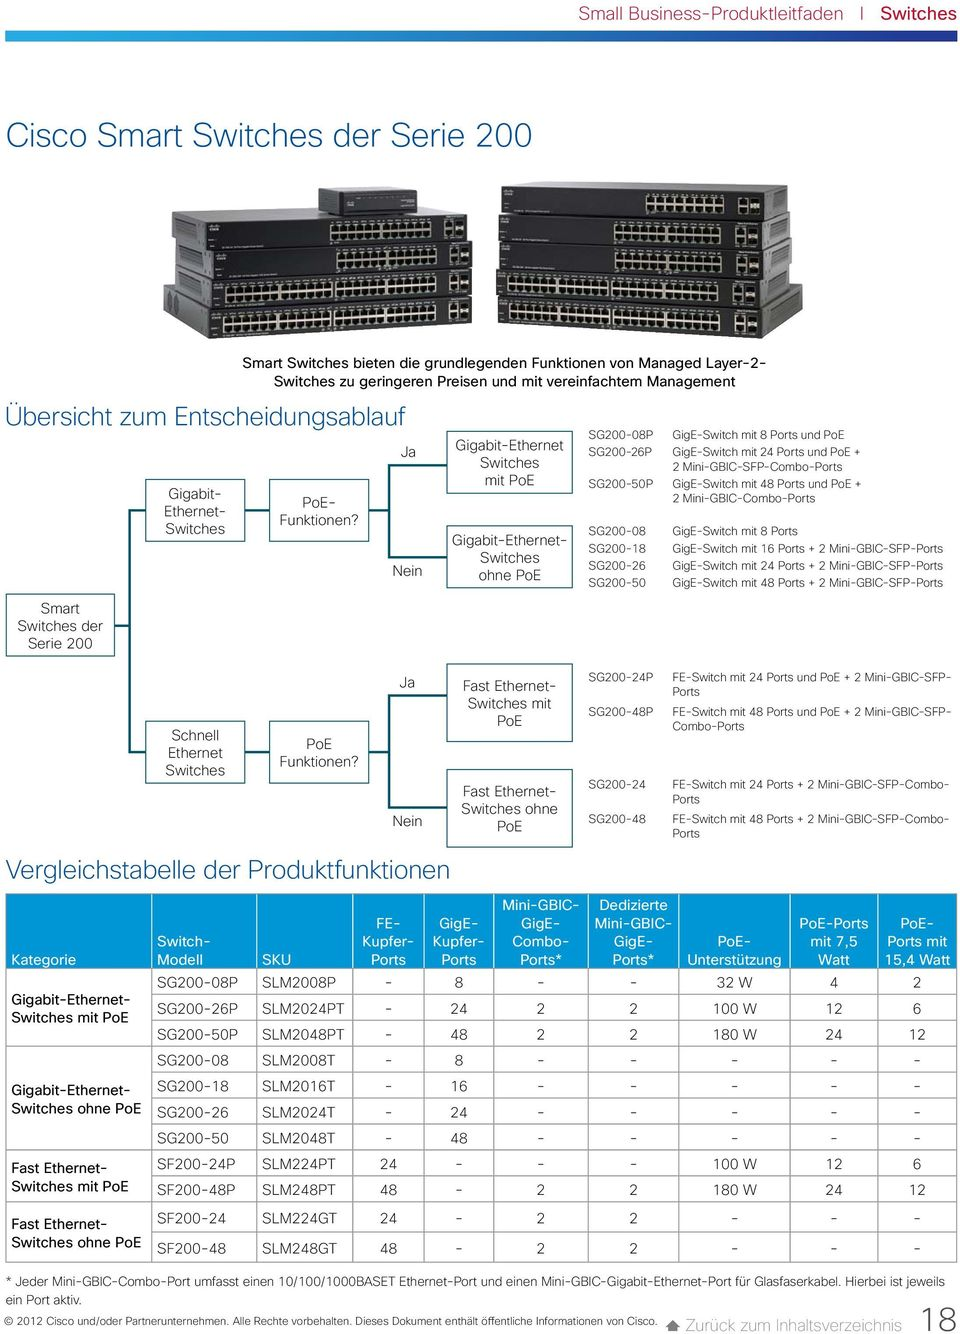 Gigabit-Ethernet Switches mit PoE Gigabit-Ethernet- Switches ohne PoE SG200-08P GigE-Switch mit 8 Ports und PoE SG200-26P GigE-Switch mit 24 Ports und PoE + 2 Mini-GBIC-SFP-Combo-Ports SG200-50P